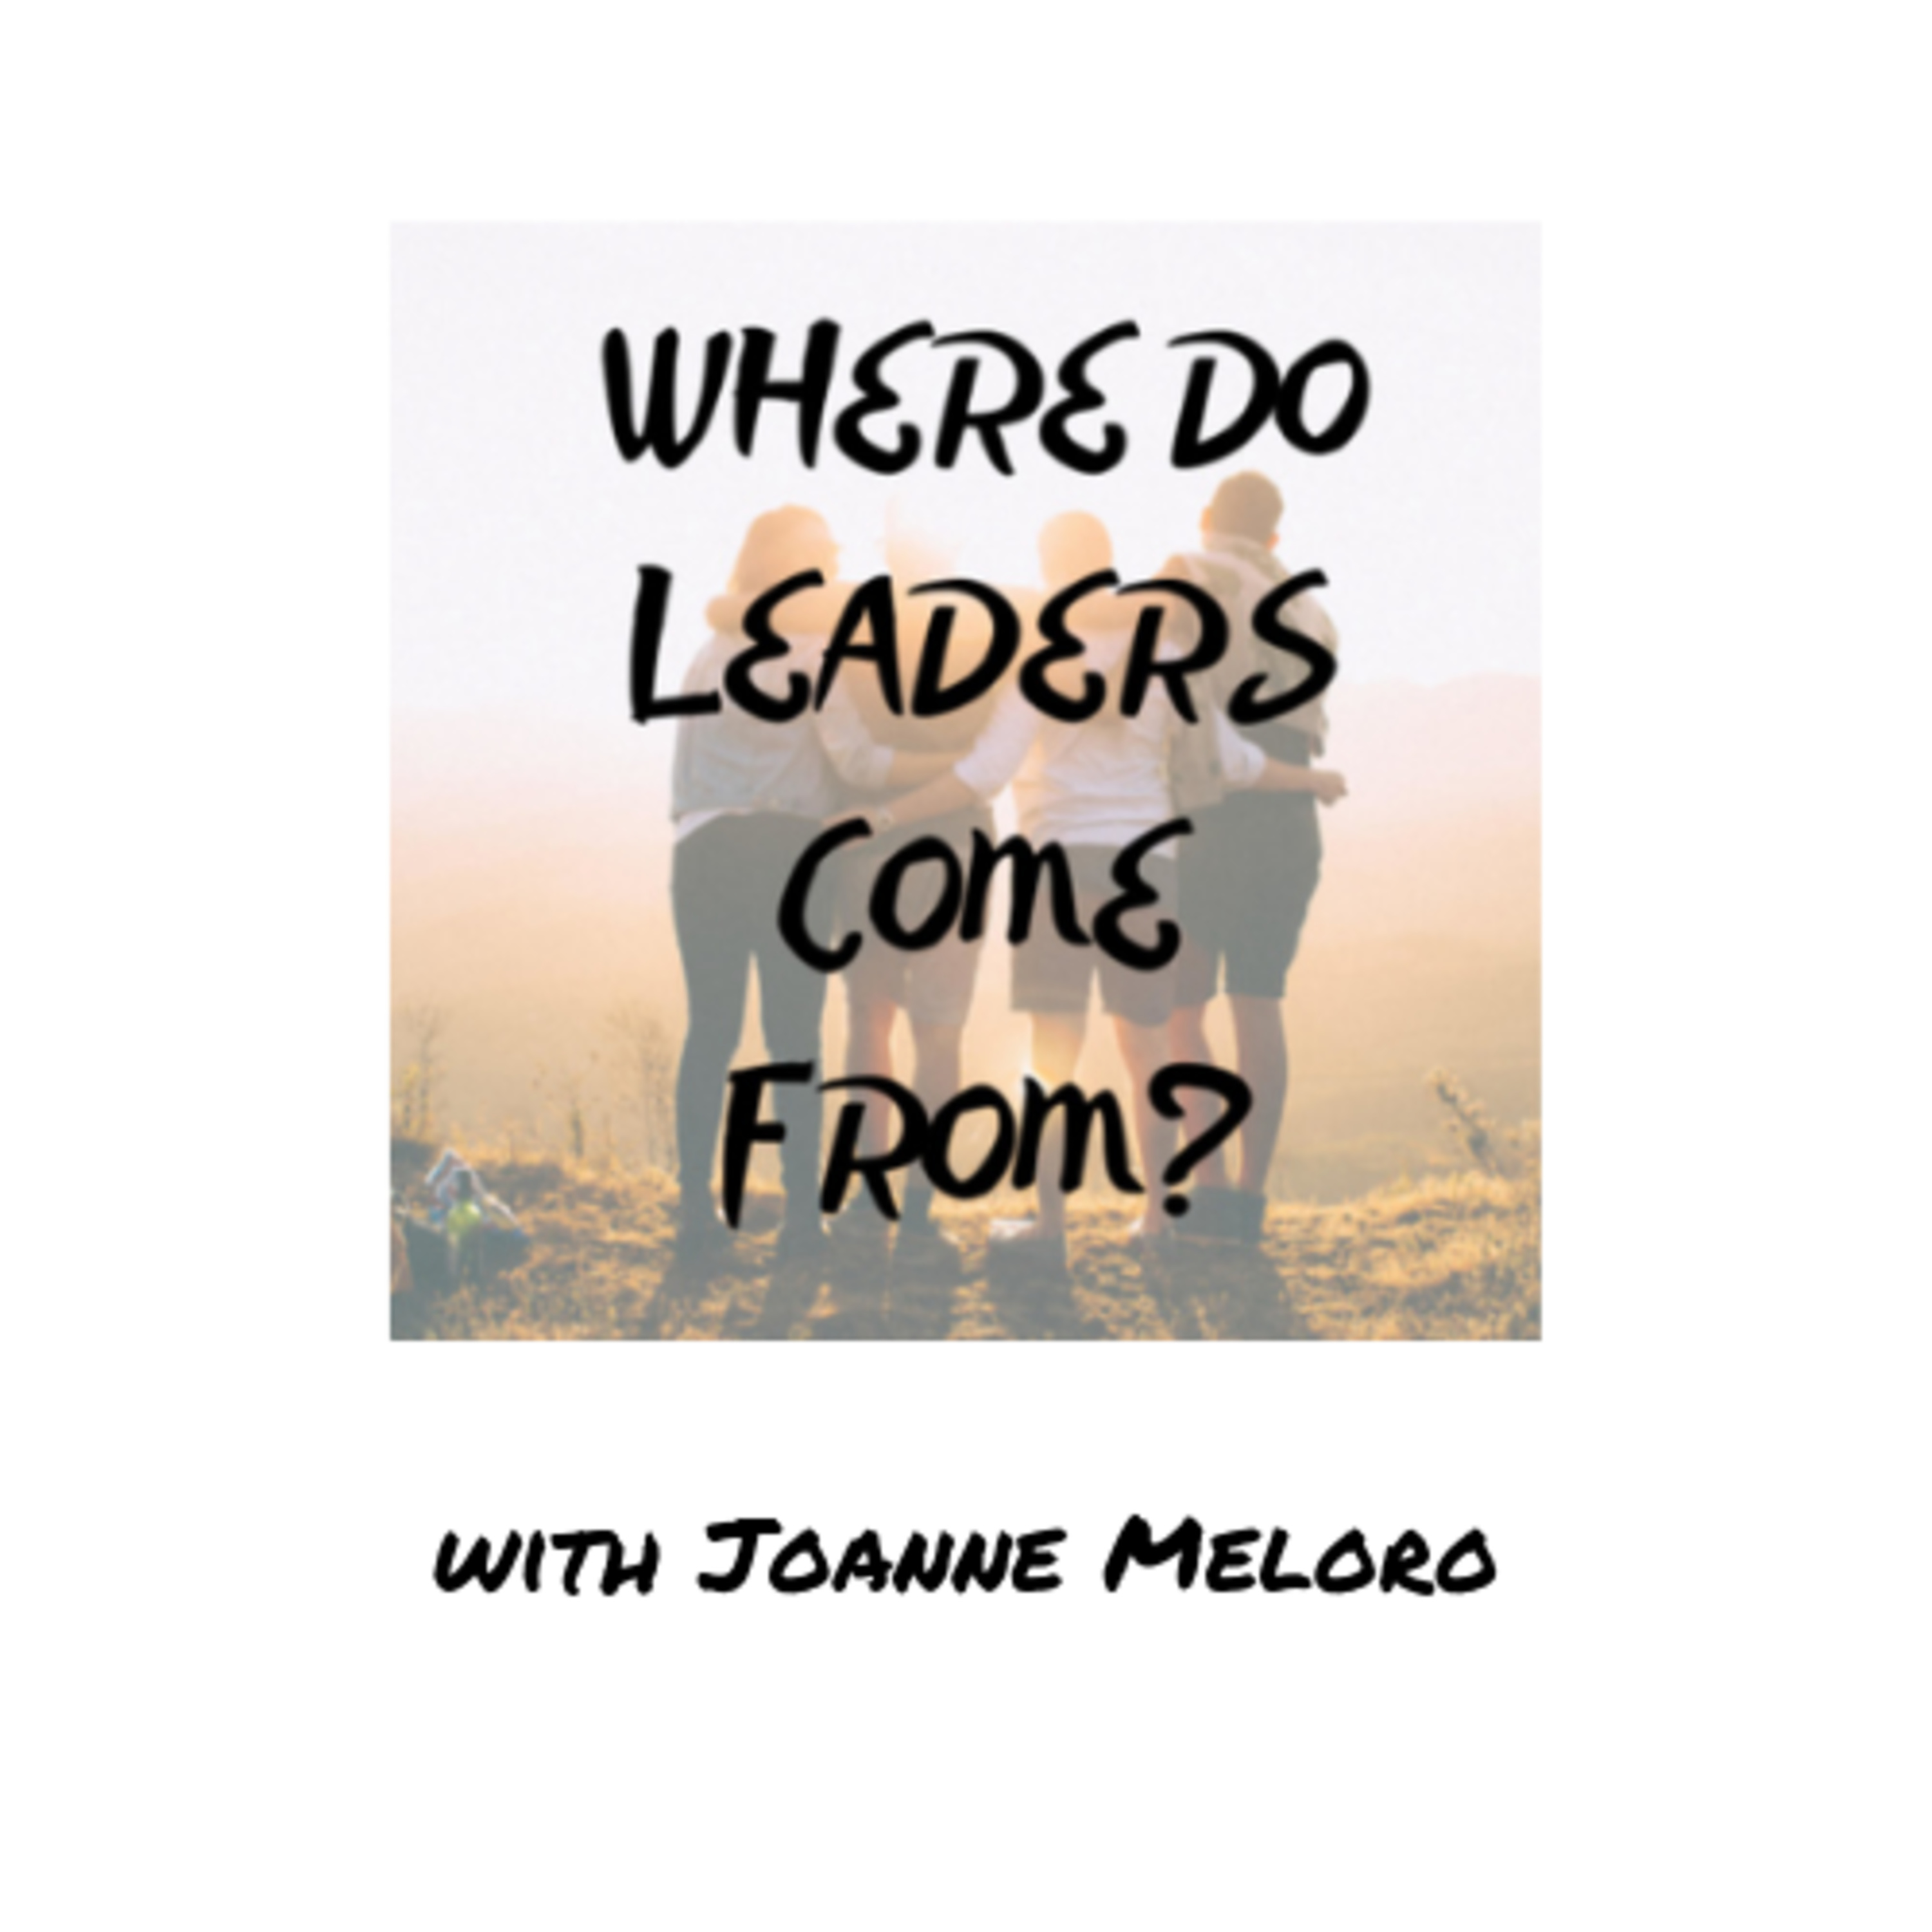 Everyone needs a coach - Joanne Meloro